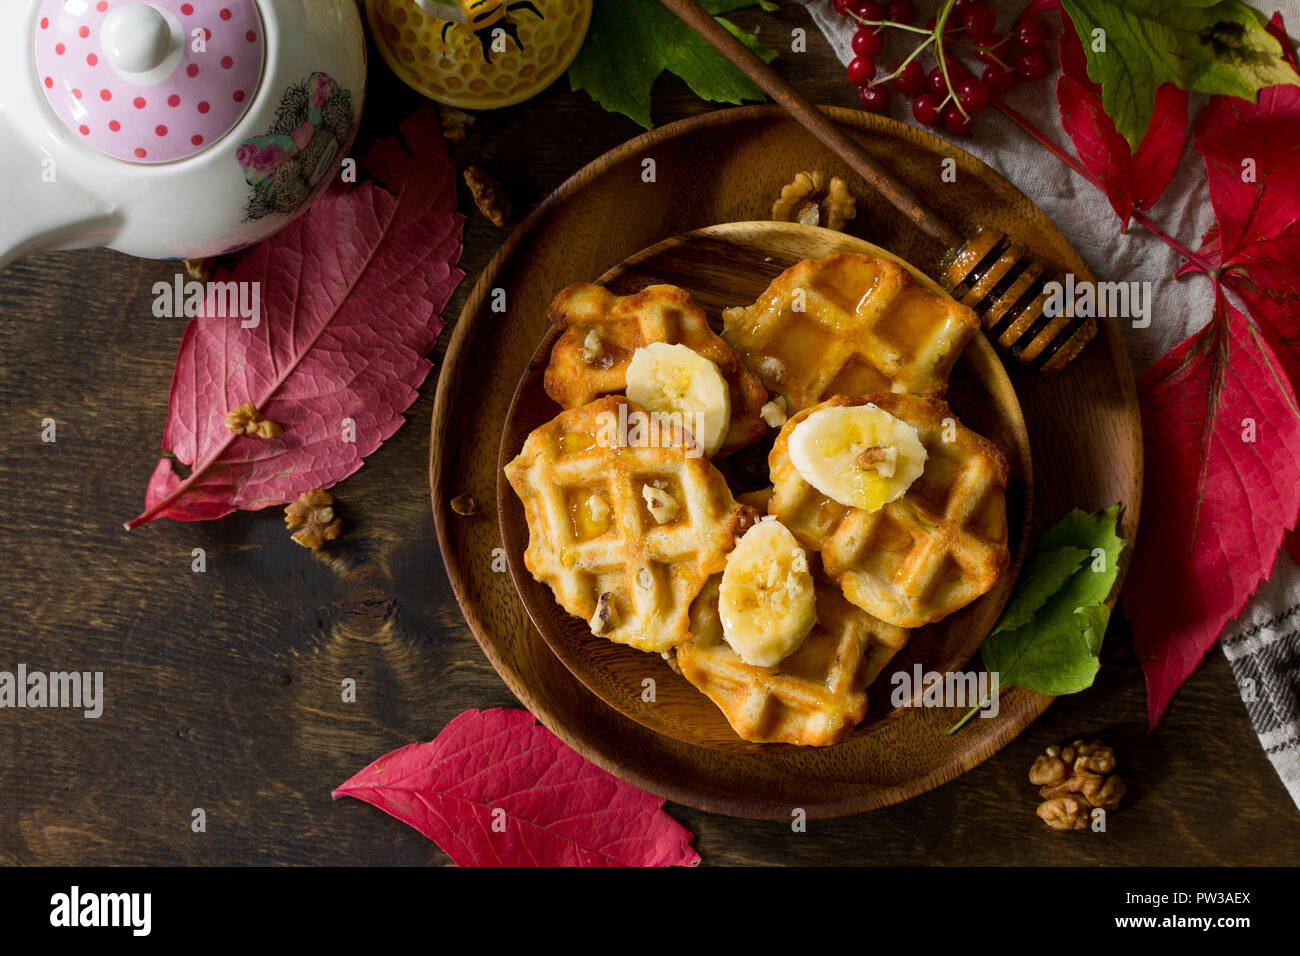 Thanksgiving baking. Belgian Walnut Wafers on a wooden kitchen table, served with fresh banana slices and honey. Top view flat lay background. Copy sp - Stock Image